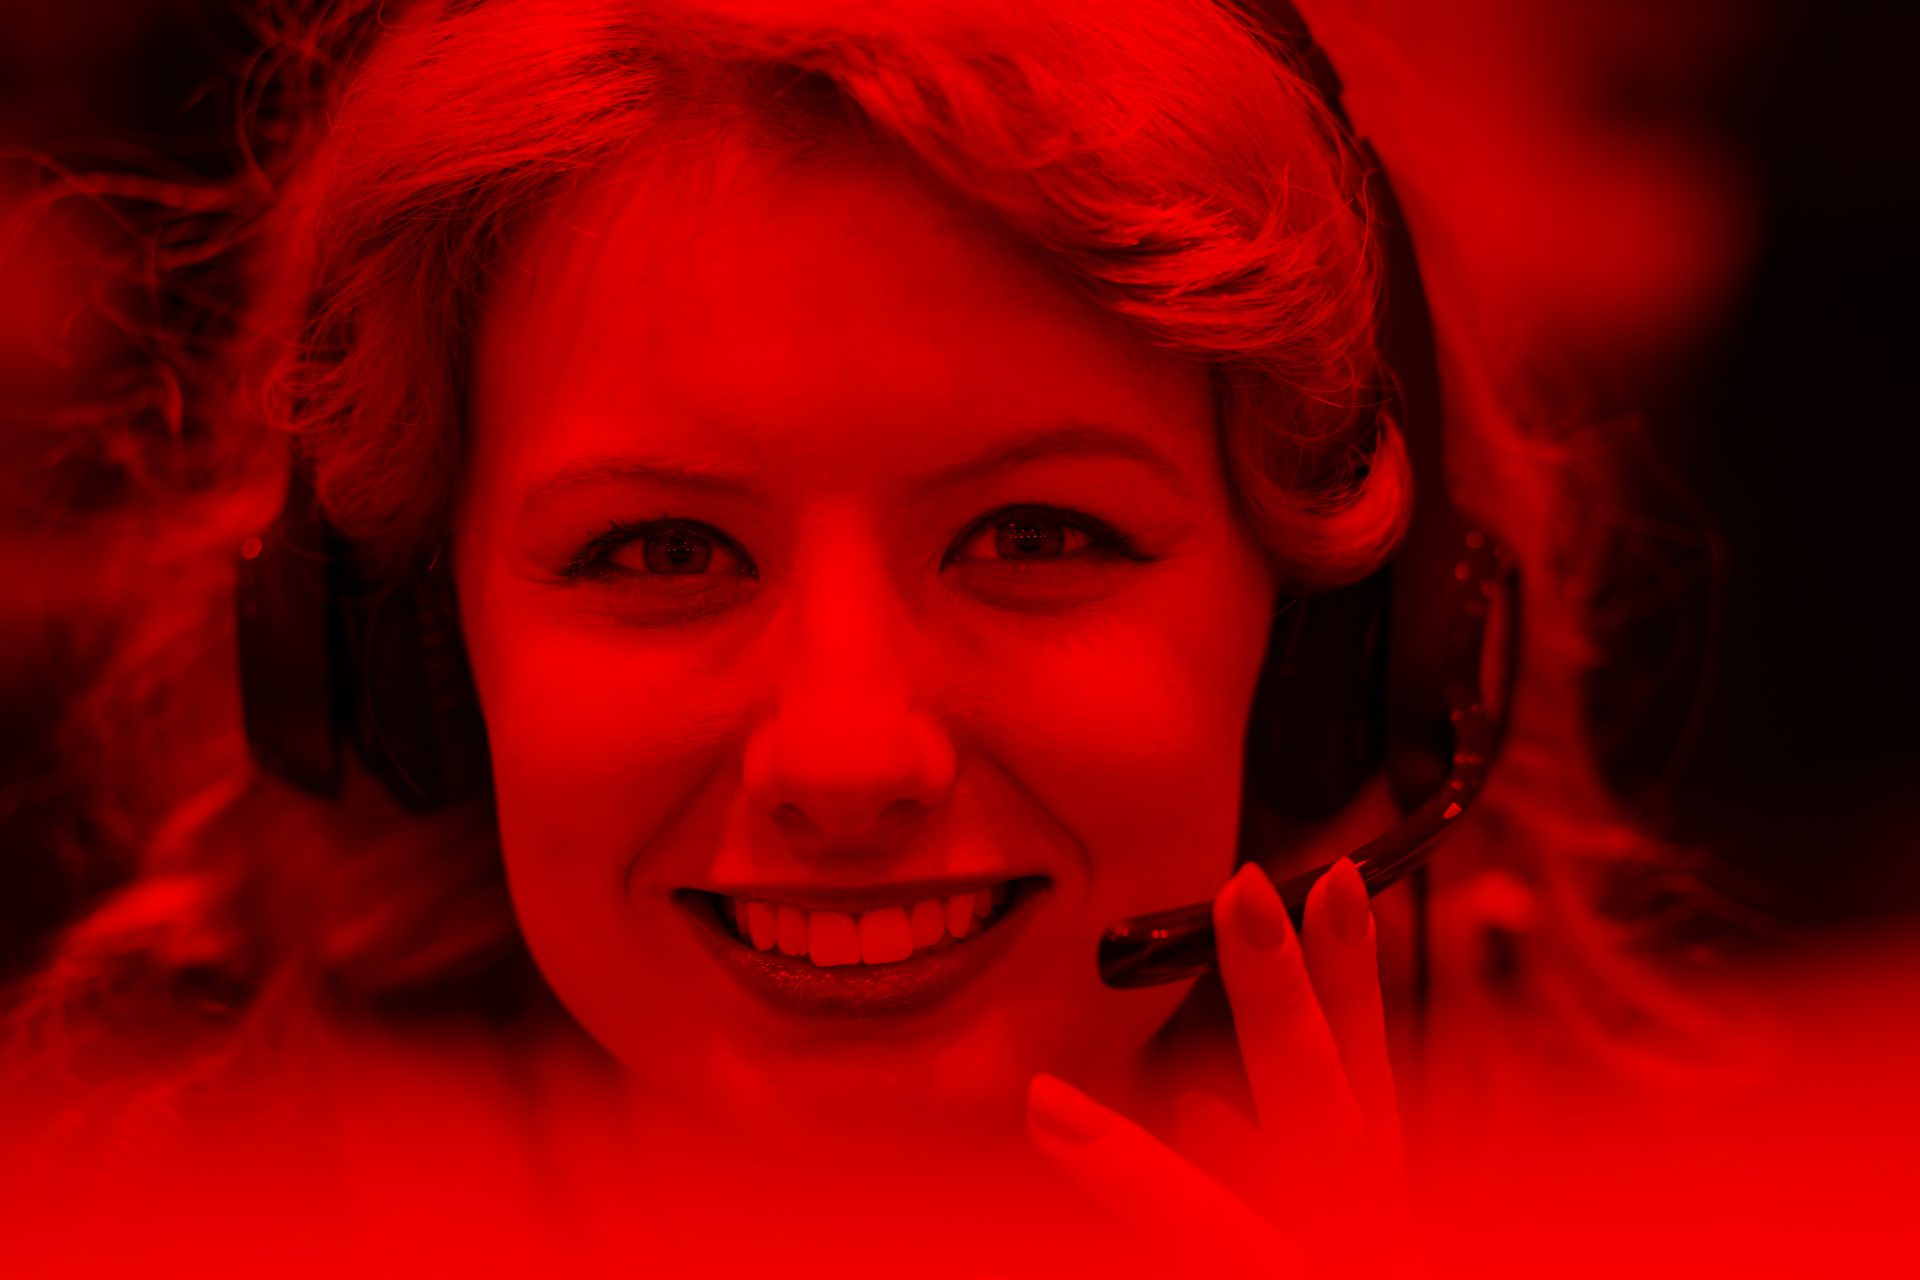 Smiling woman on call centre headset with red filter